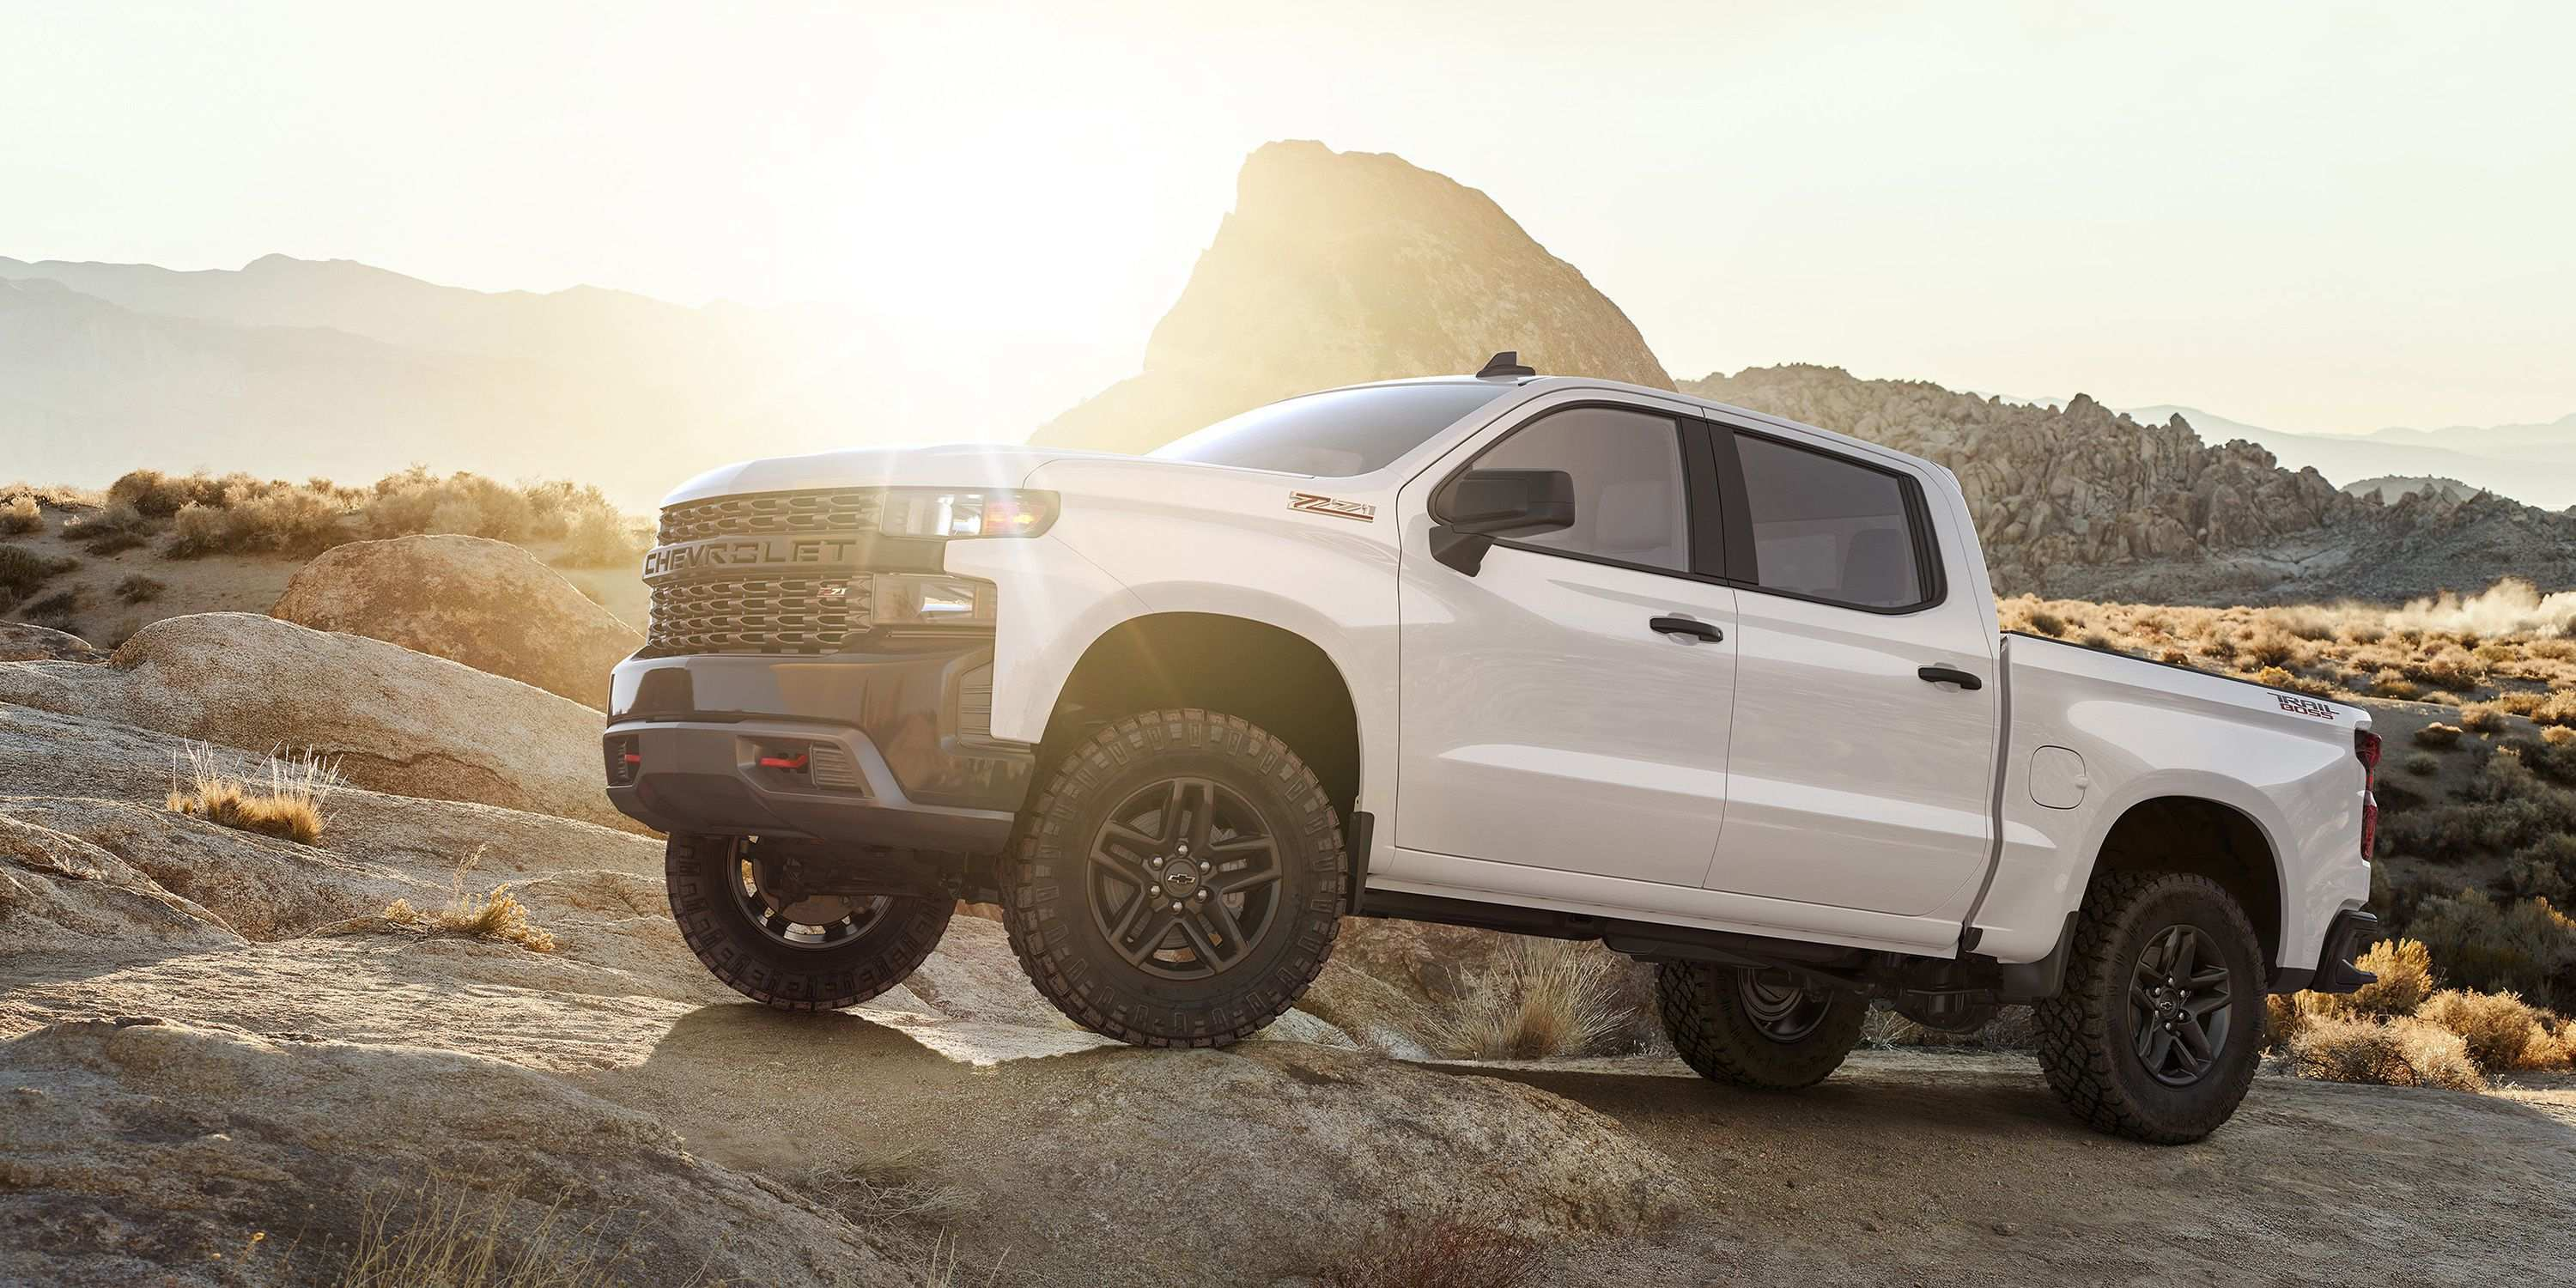 22 New The 2019 Chevrolet Half Ton Diesel First Drive Prices for The 2019 Chevrolet Half Ton Diesel First Drive